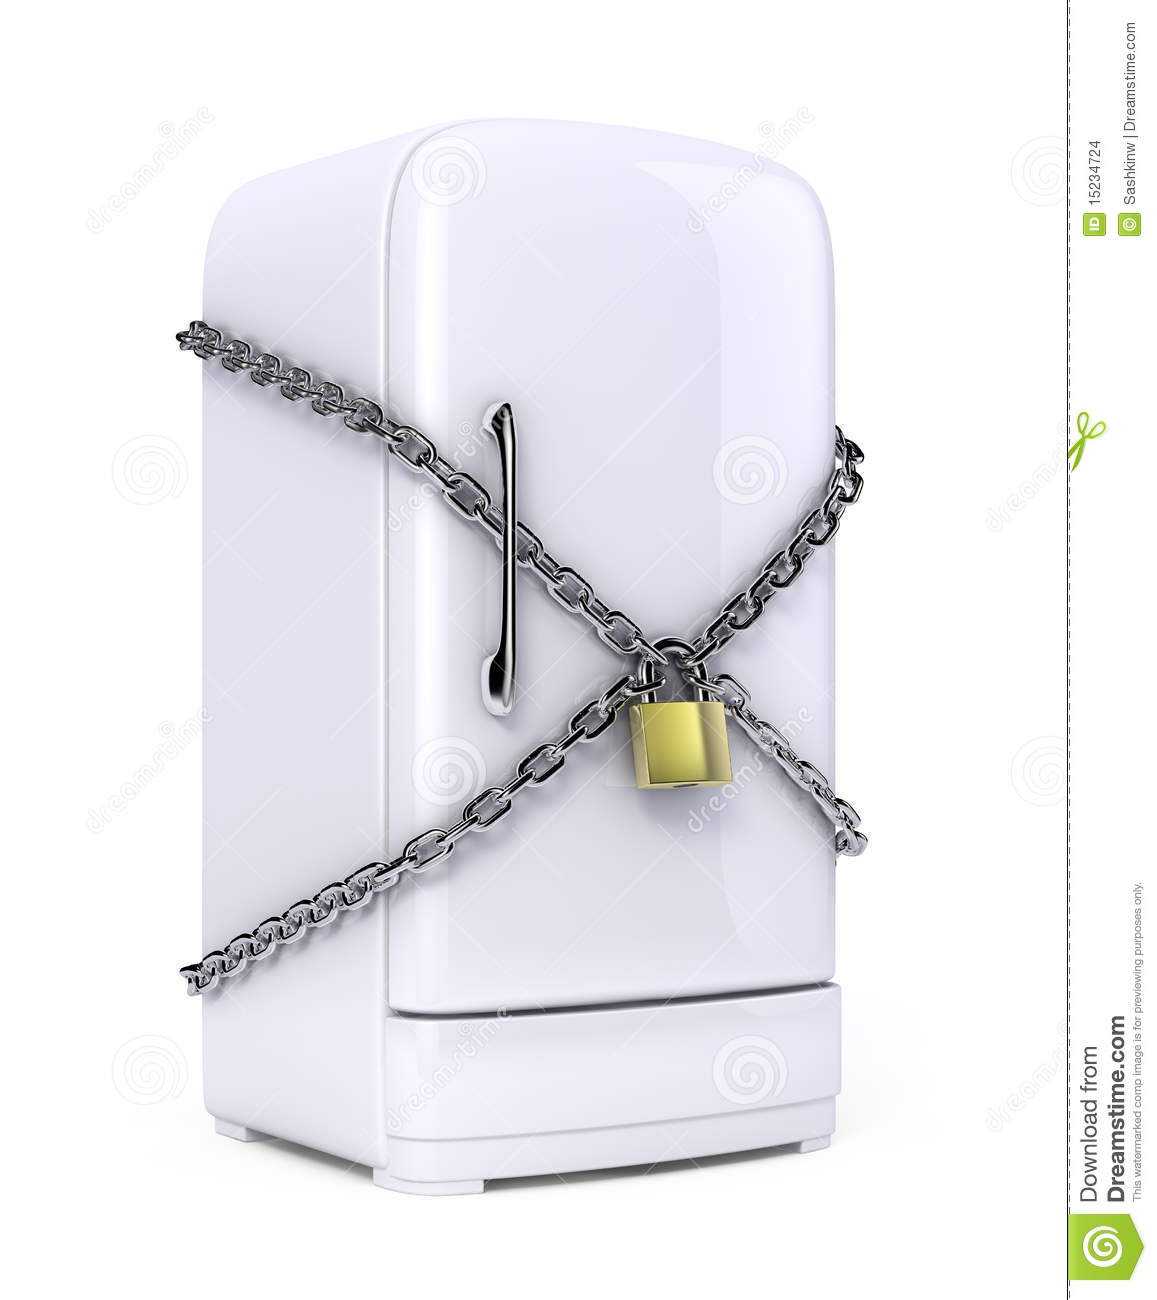 Closed Fridge With Chain And Lock Stock Illustration